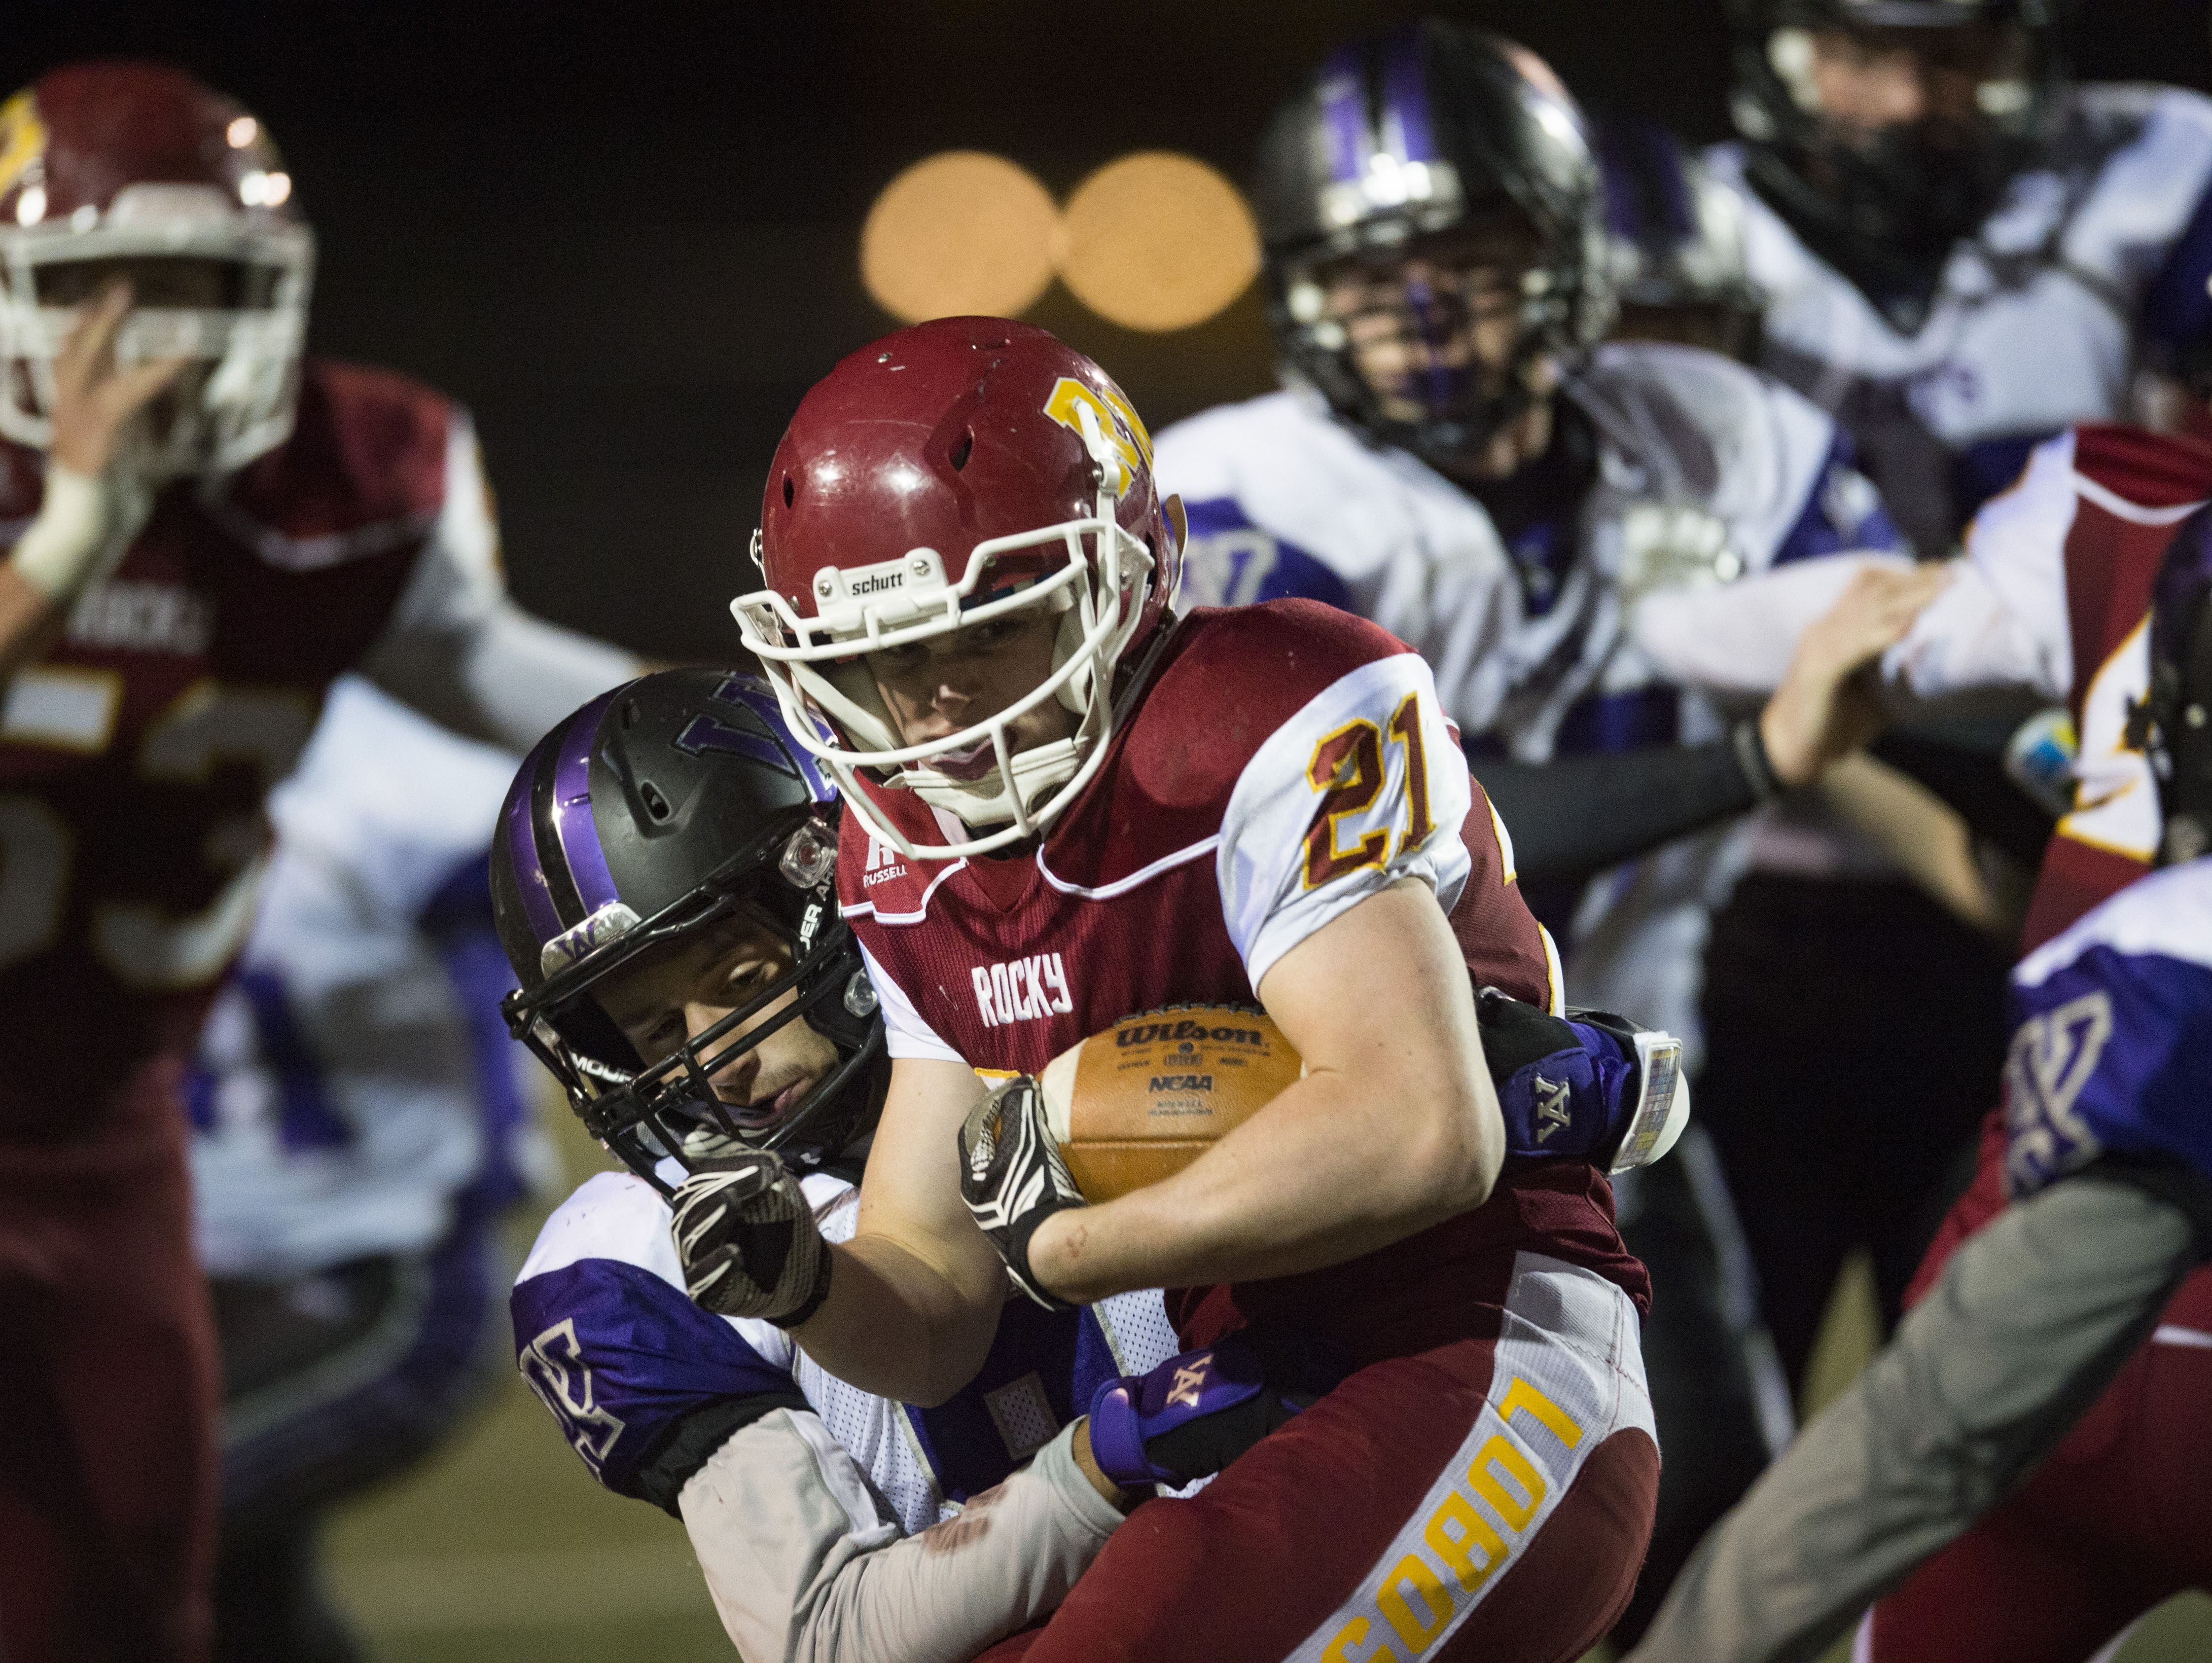 Ryan Hutcheson of Rocky Mountain High School carries the ball in a game earlier this season. The Lobos host Ralston Valley at 7 p.m. Friday.